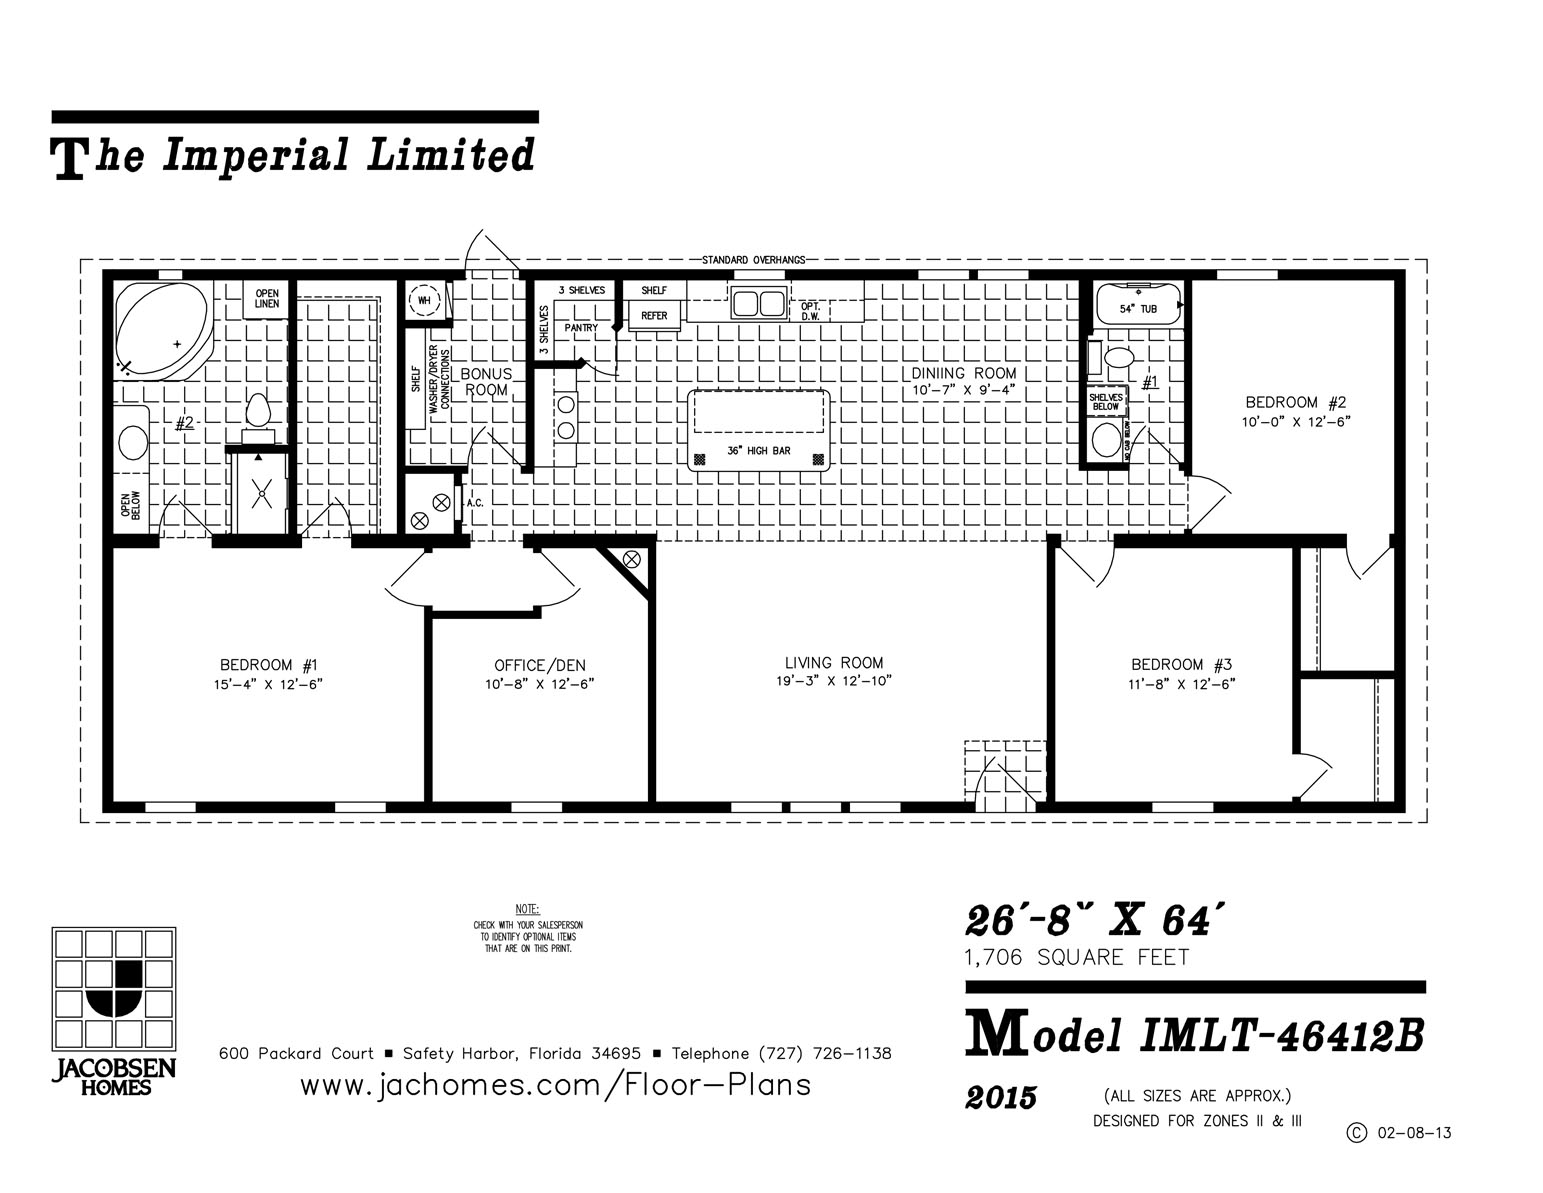 Imlt 46412b mobile home floor plan ocala custom homes for Custom home floor plans